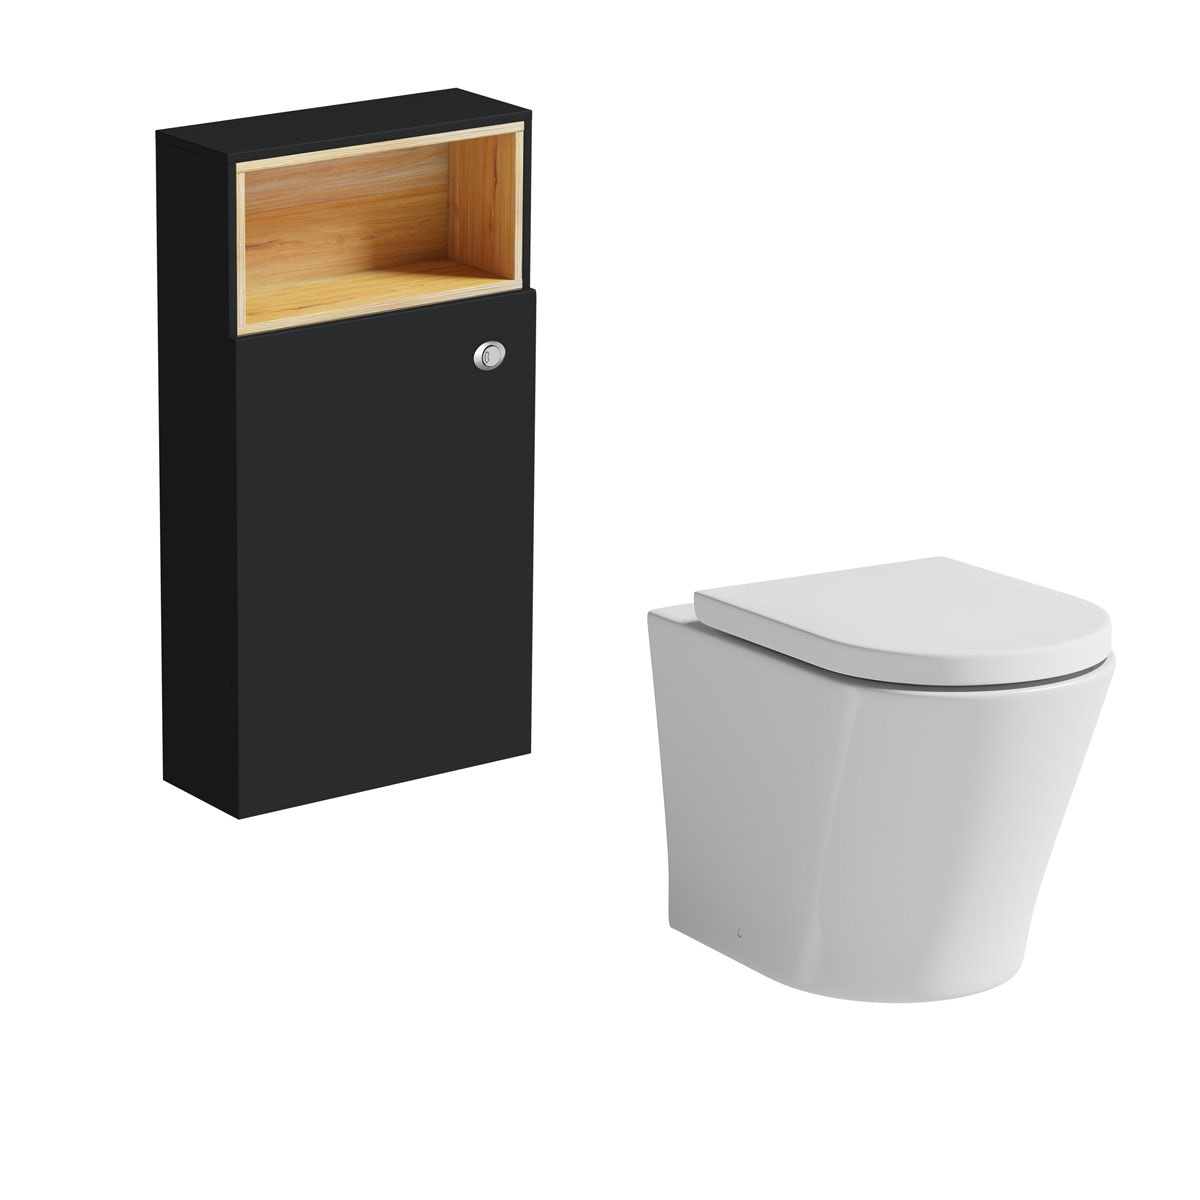 Mode Tate anthracite & oak slimline back to wall toilet unit with contemporary toilet and seat